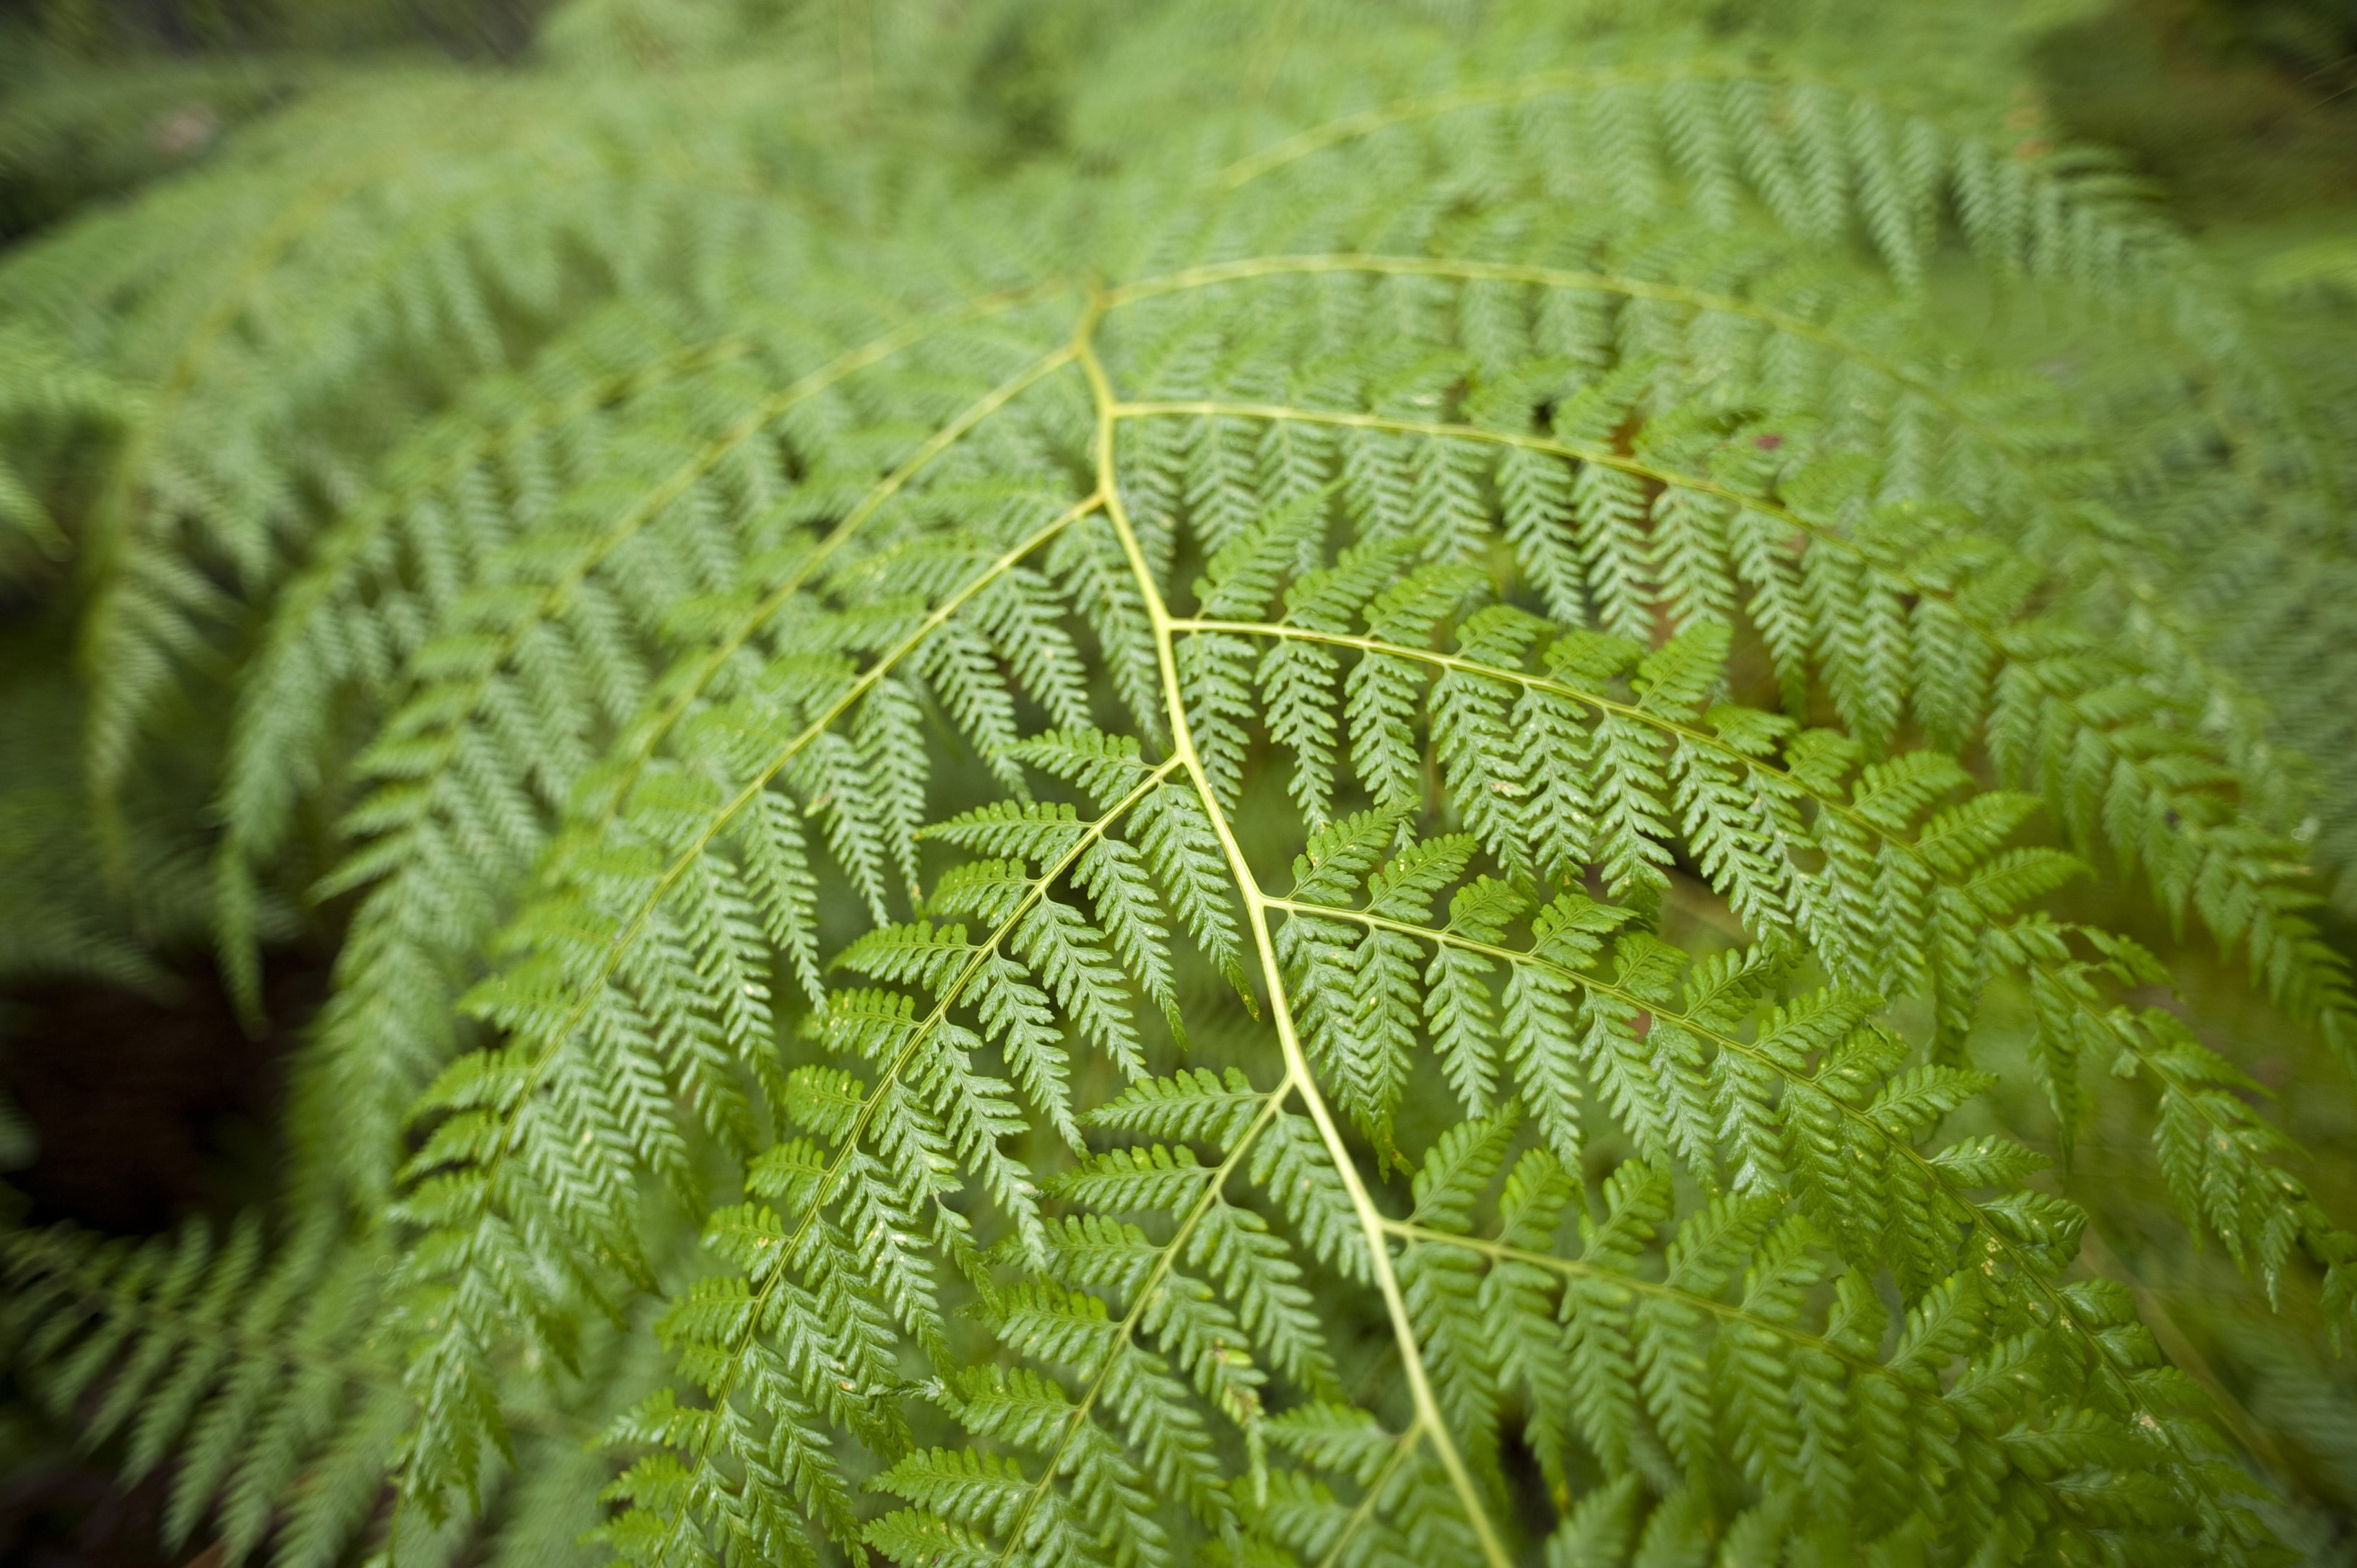 Nature background with the fresh green foliage of a tropical fern frond arching towards the camera with shallow dof